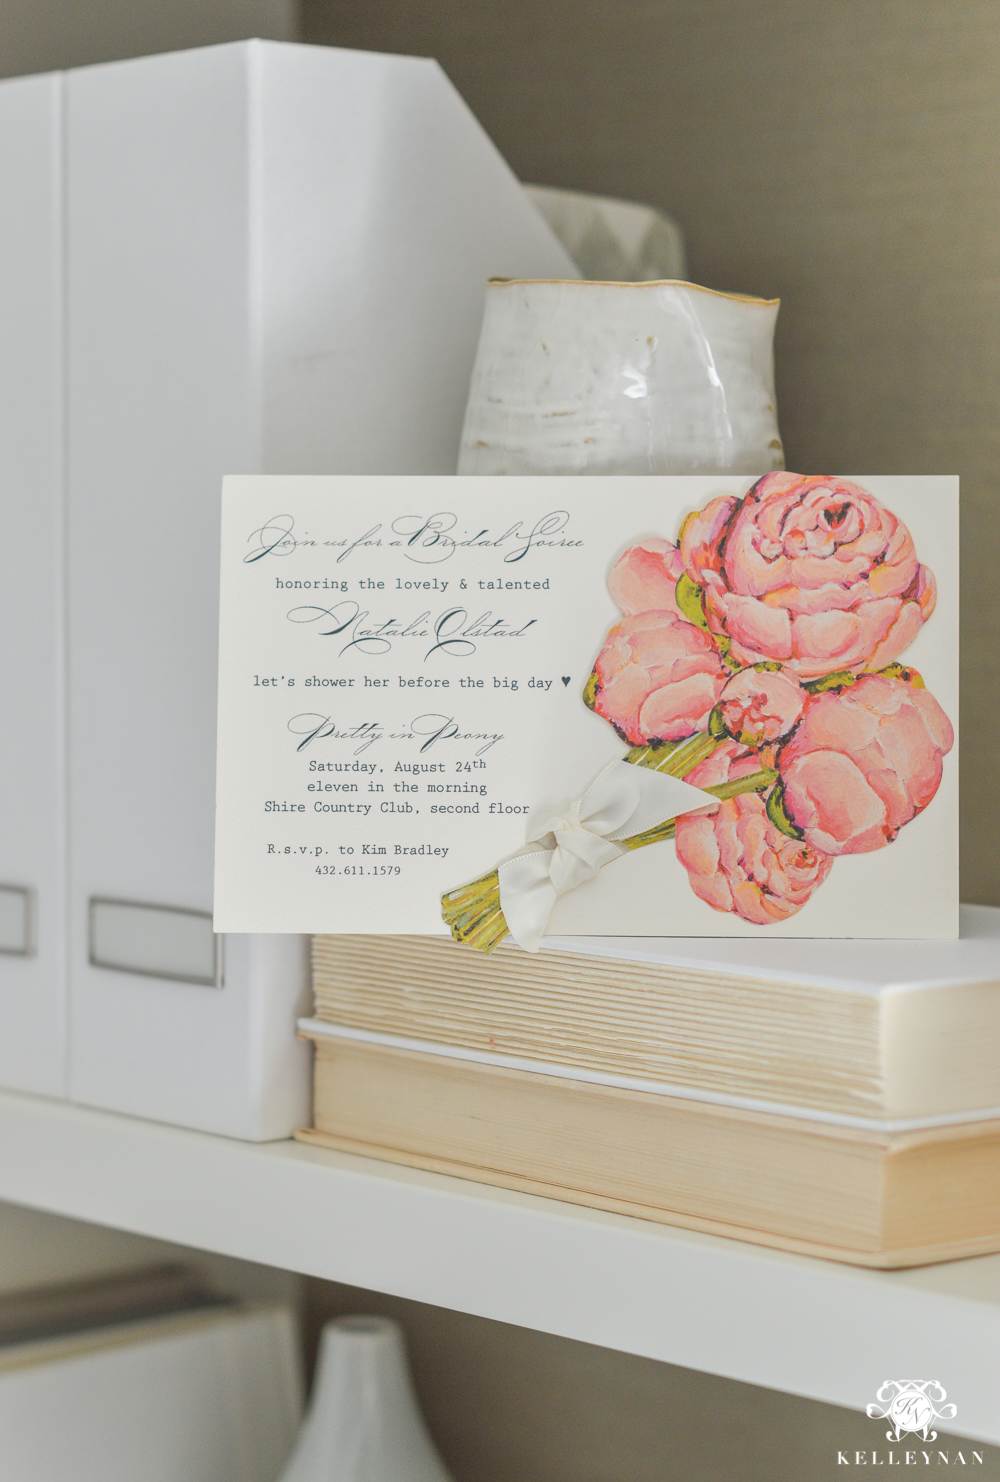 Bridal shower invitation with bouquet embellishments